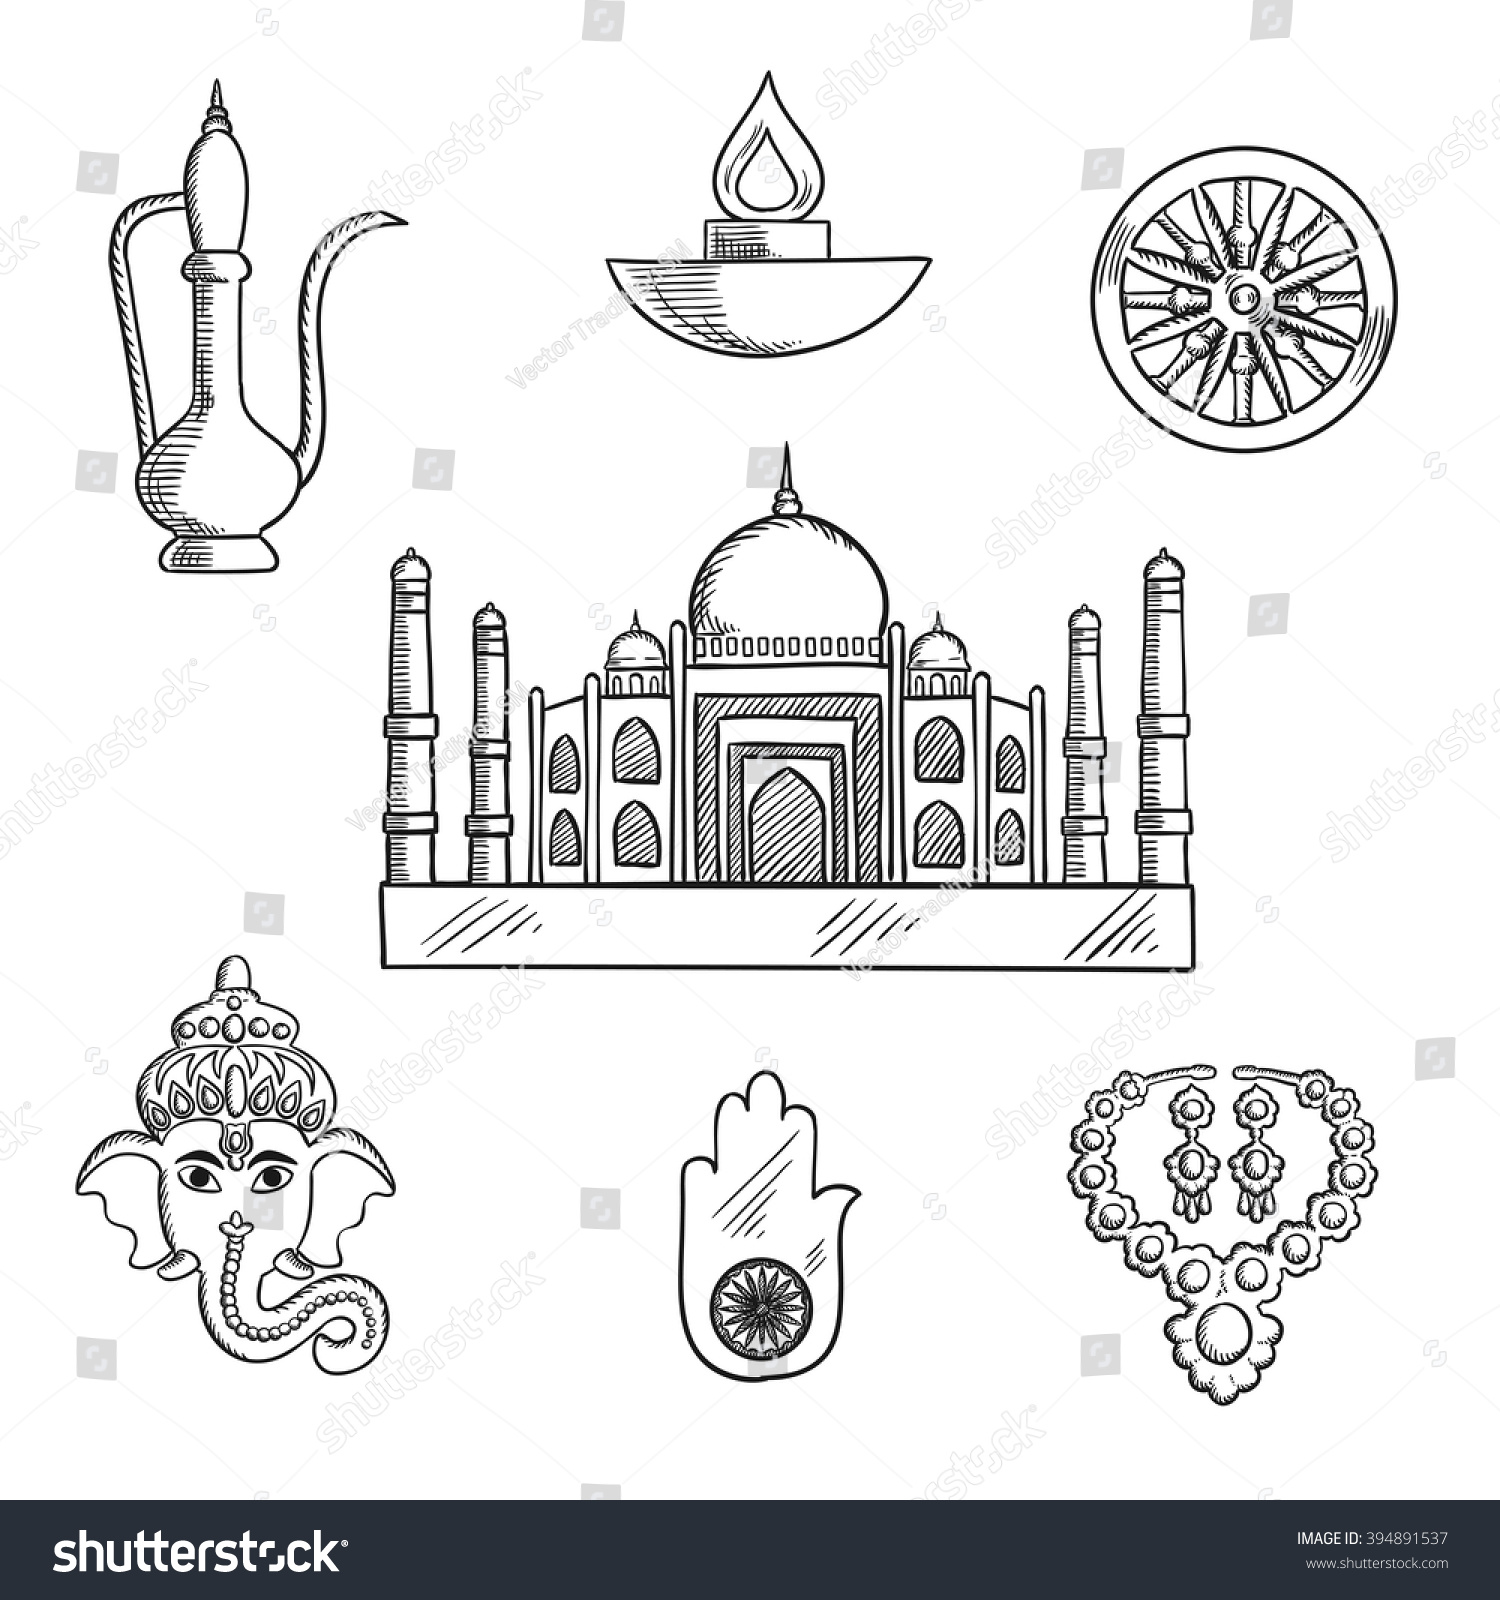 Indian Religion Culture Symbols Ganesha God Stock Vector Royalty